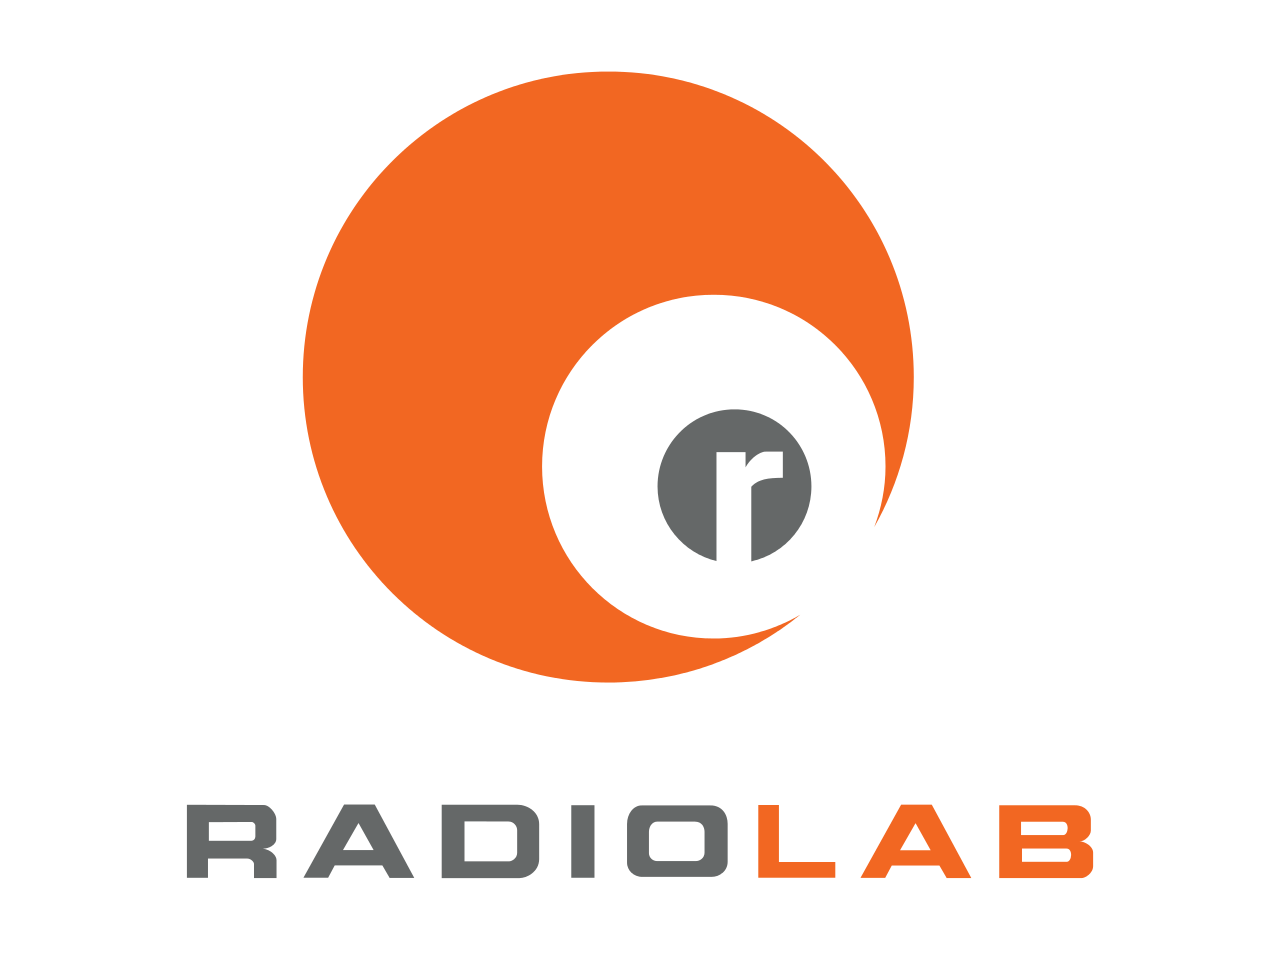 radiolab podcast, radio lab podcast